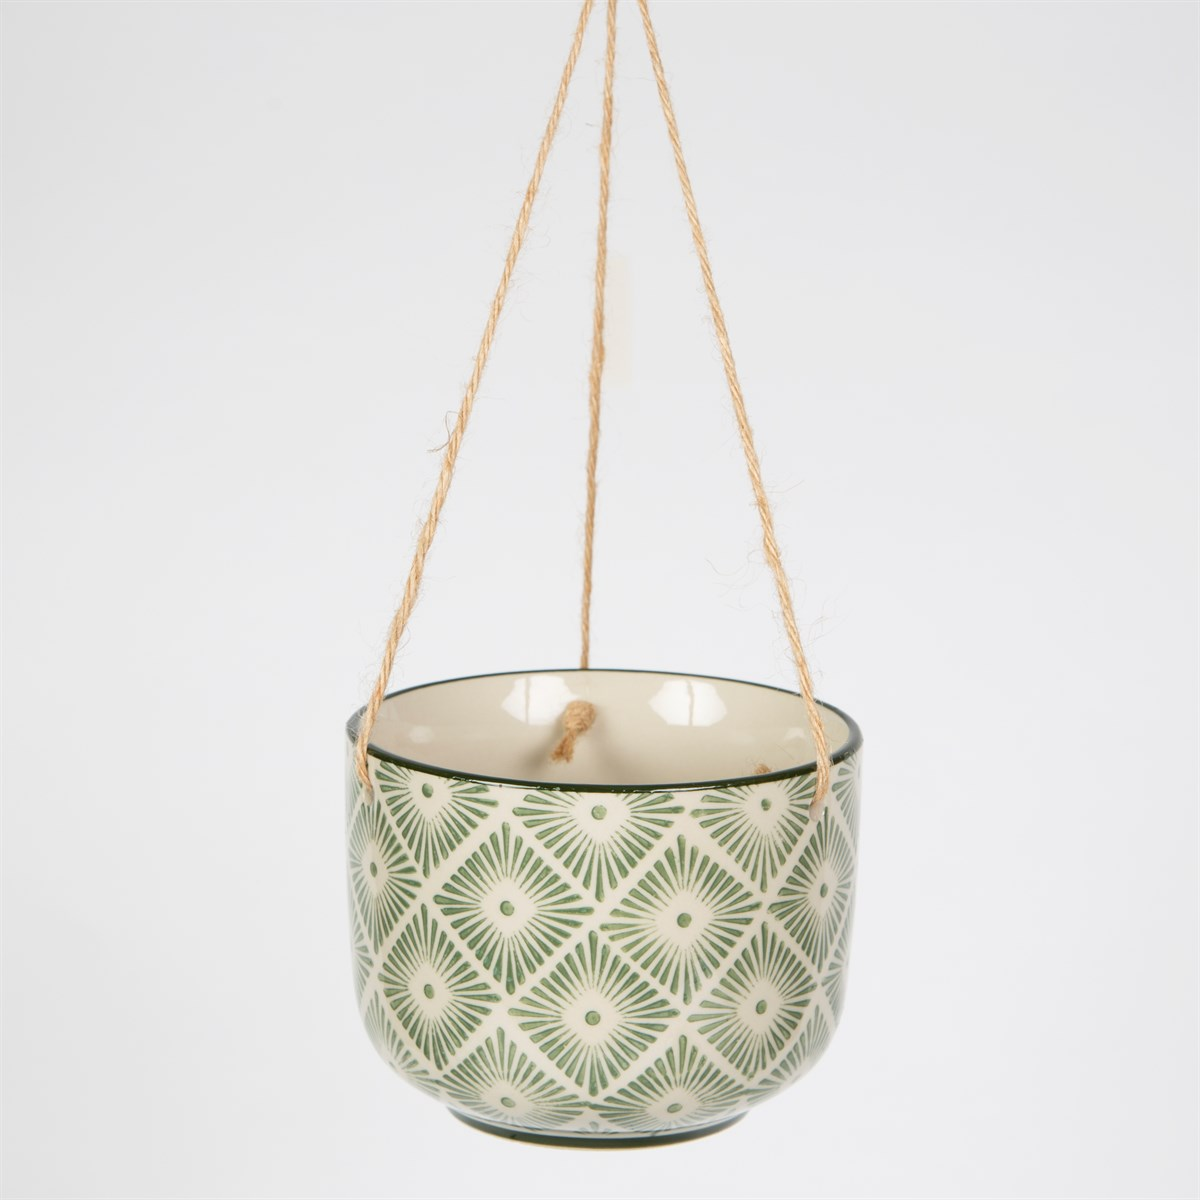 Hanging green & cream ceramic dream